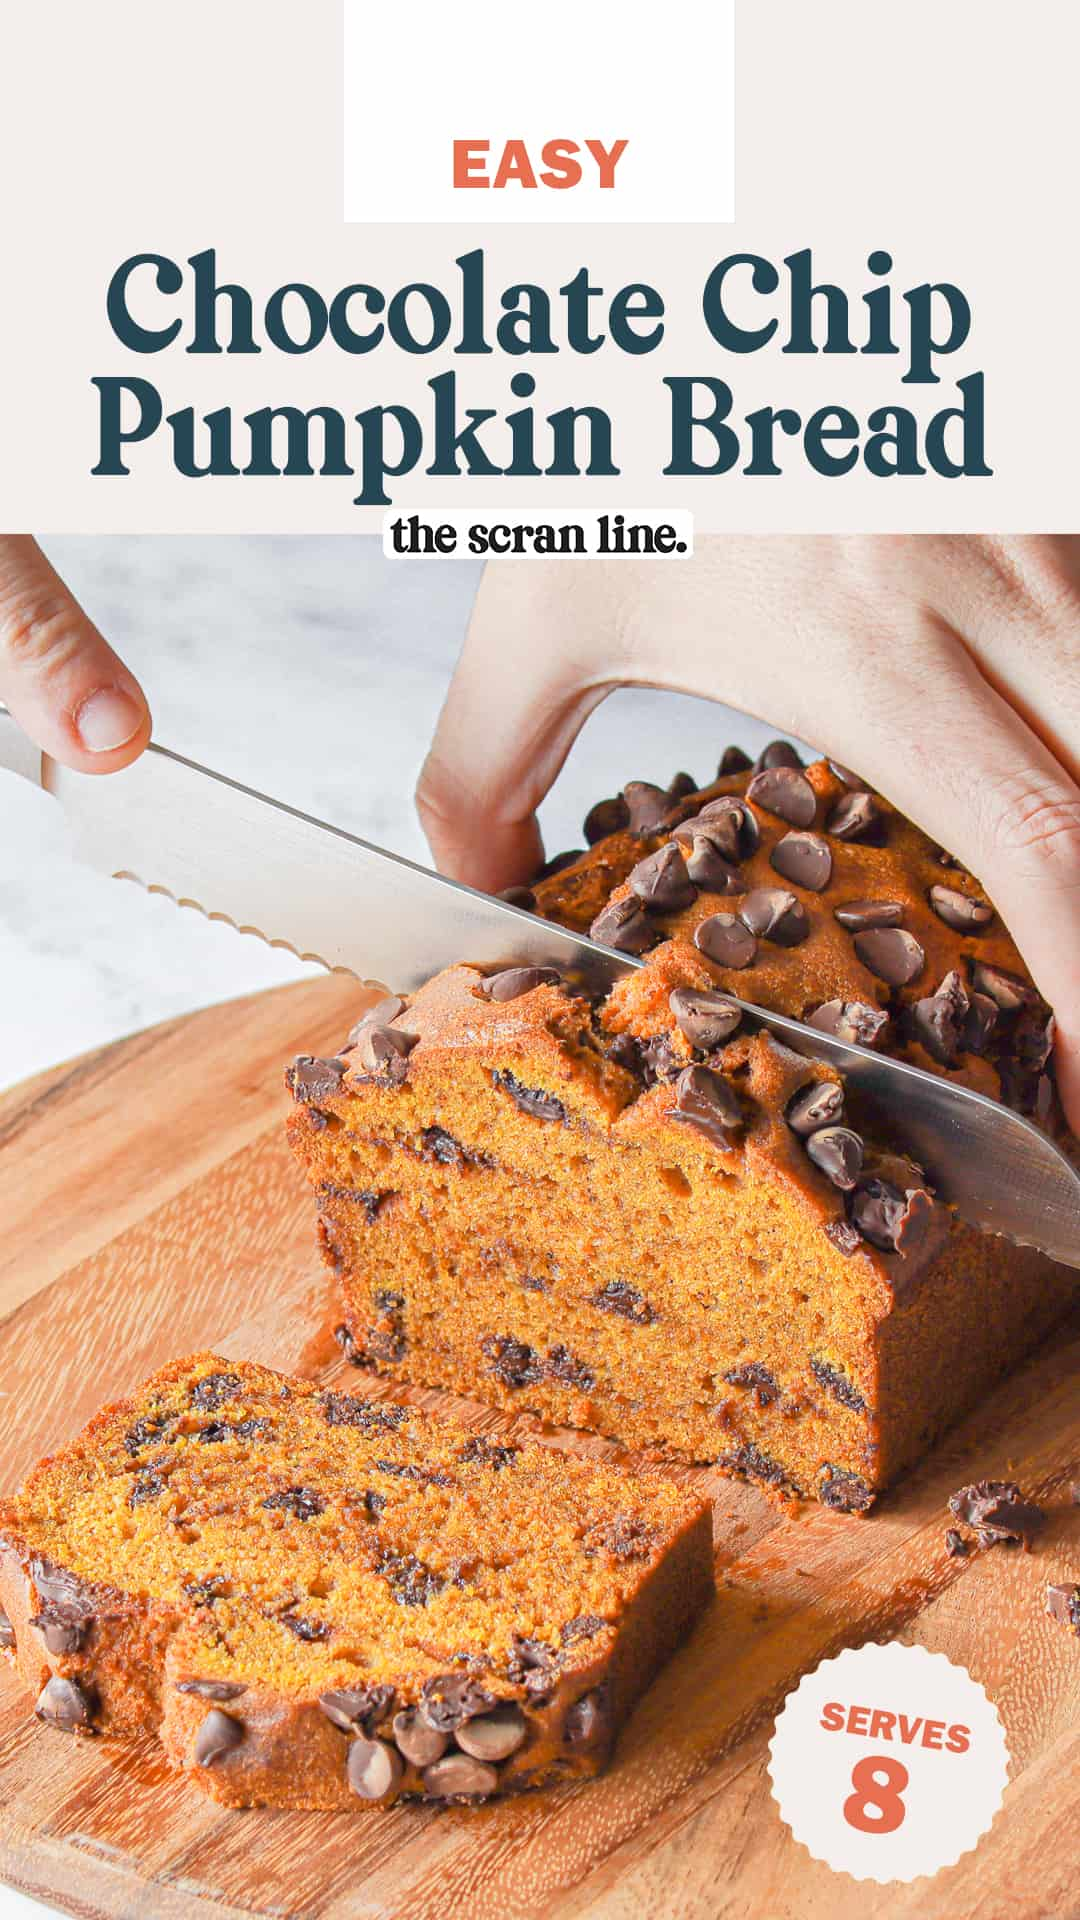 Pinterest image for Chocolate Chip Pumpkin Bread